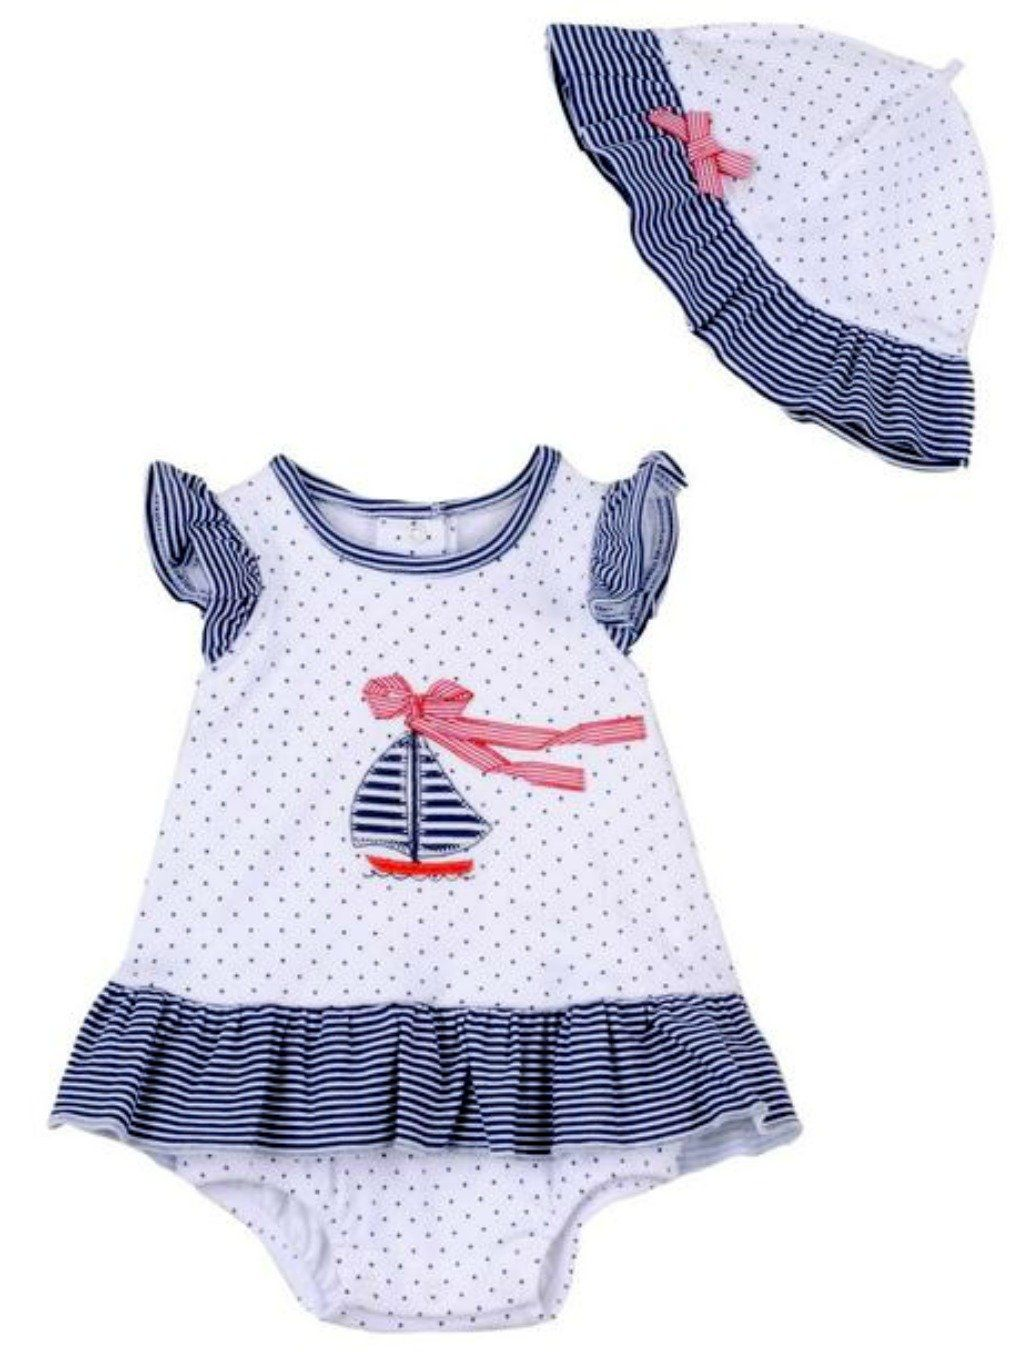 Little Me BabyGirls Sailboat Dress with Sunhat  months  new